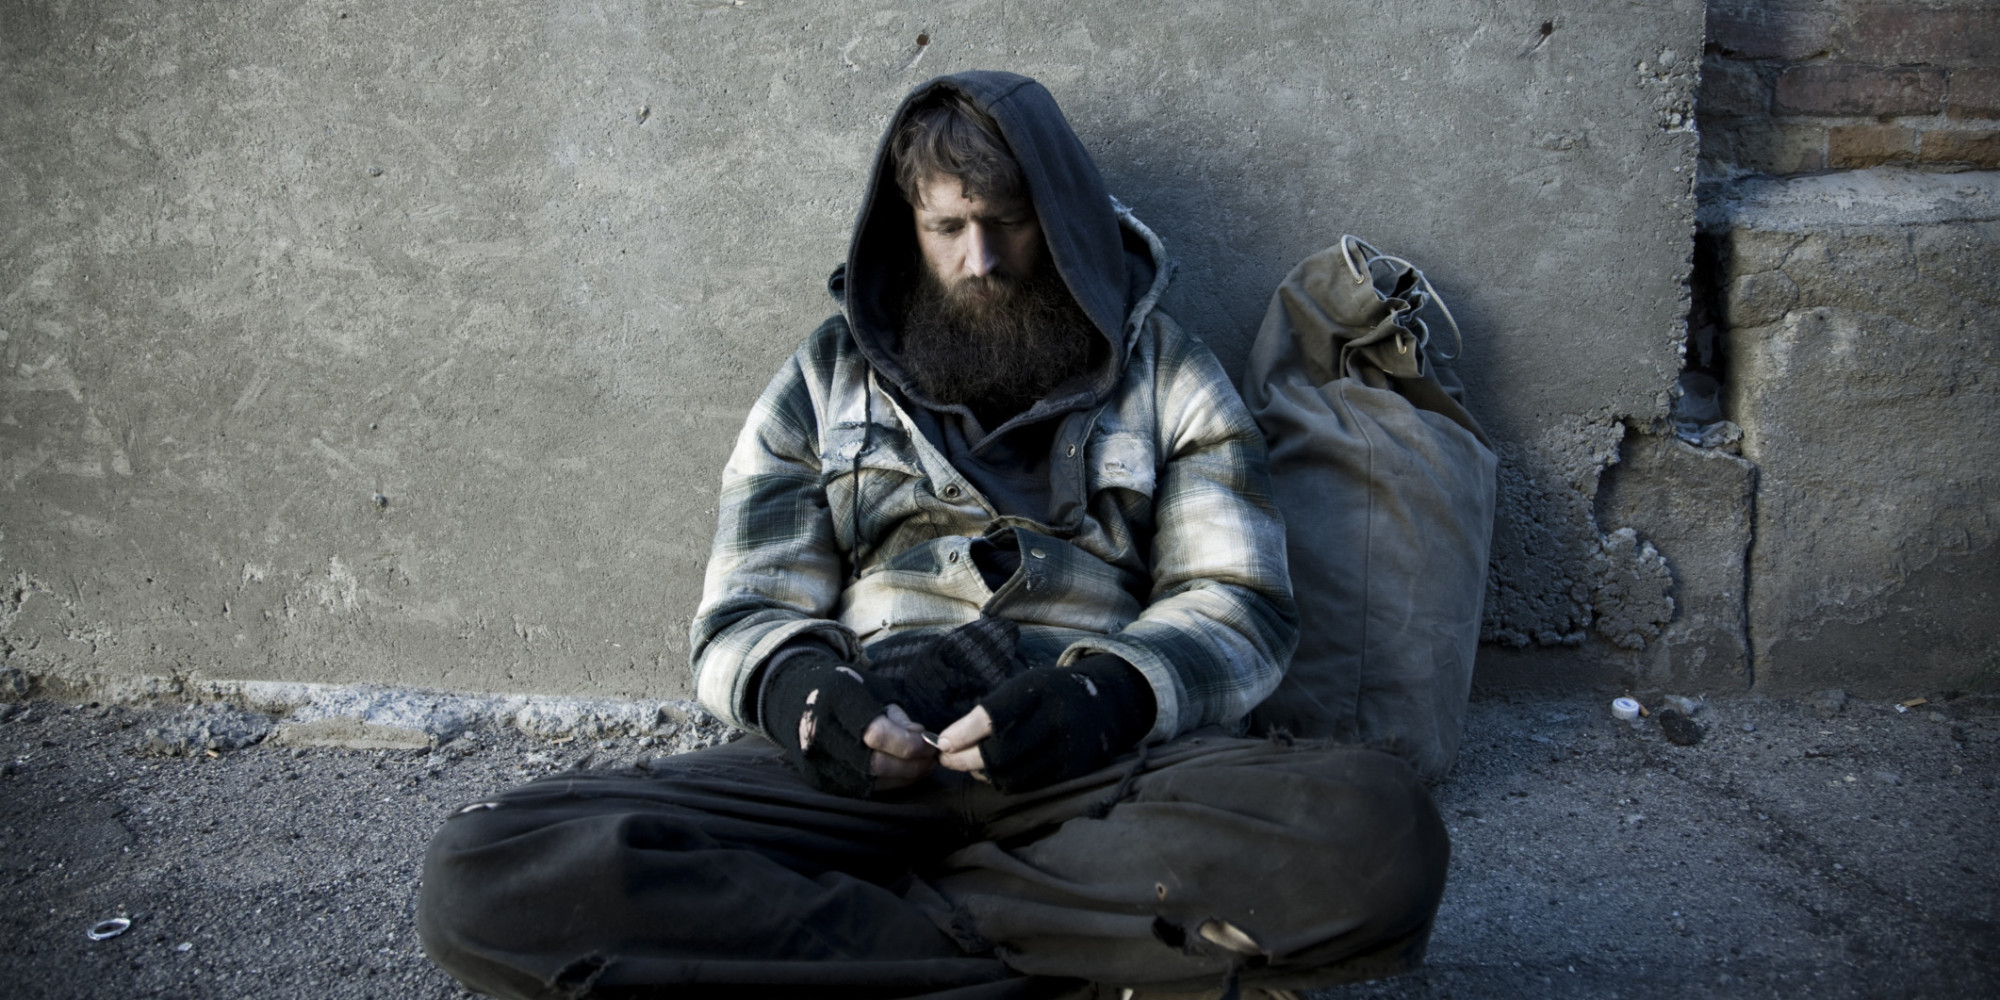 Homeless Person legal definition of Homeless Person